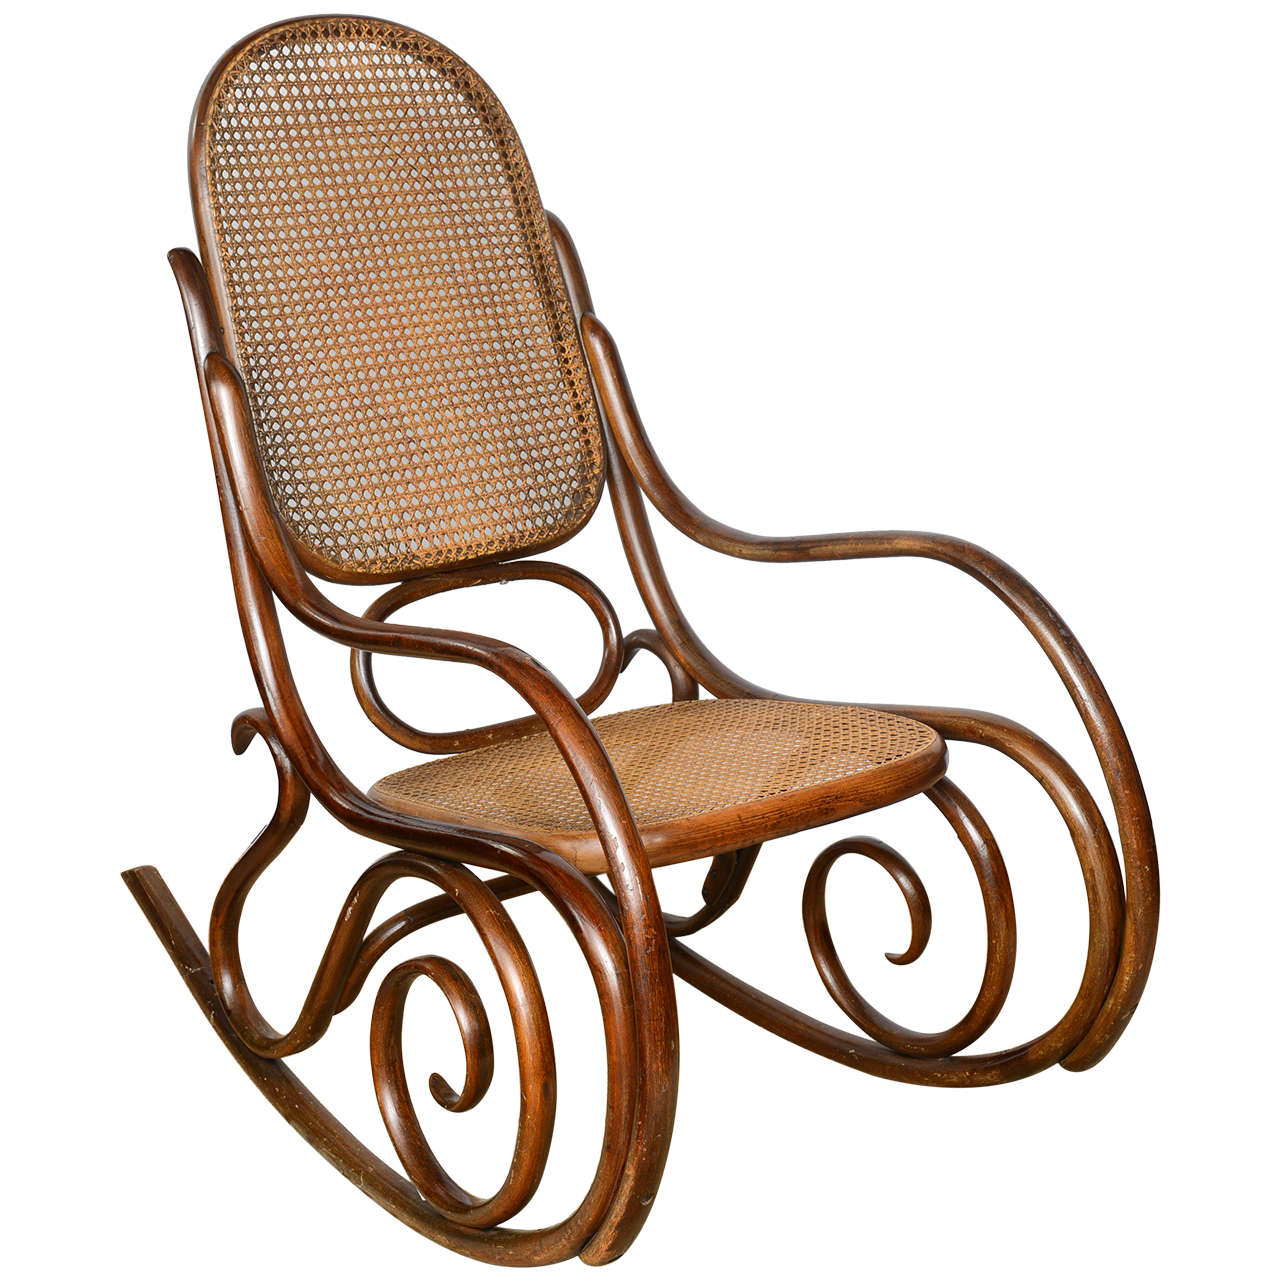 Image Result For Early American Wood Chairs